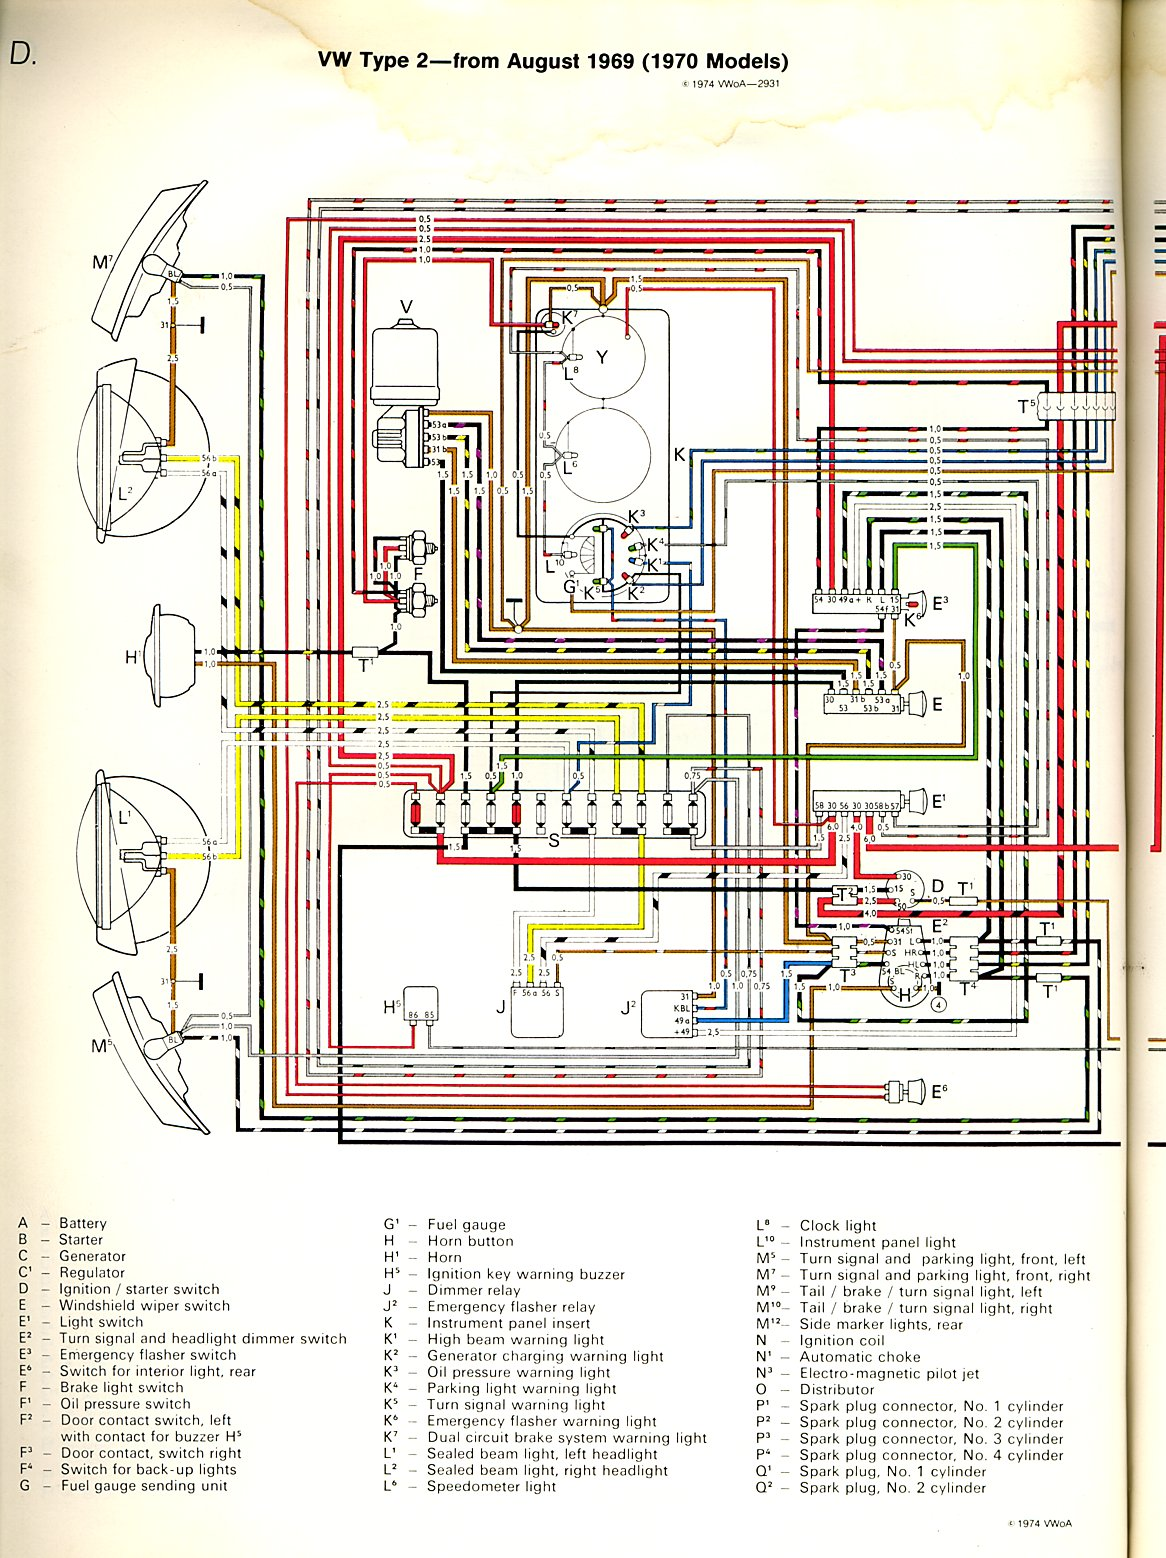 1974 Vw Bus Wiring Diagram Opinions About Also 72 Beetle As Well Thesamba Com Type 2 Diagrams Rh 1973